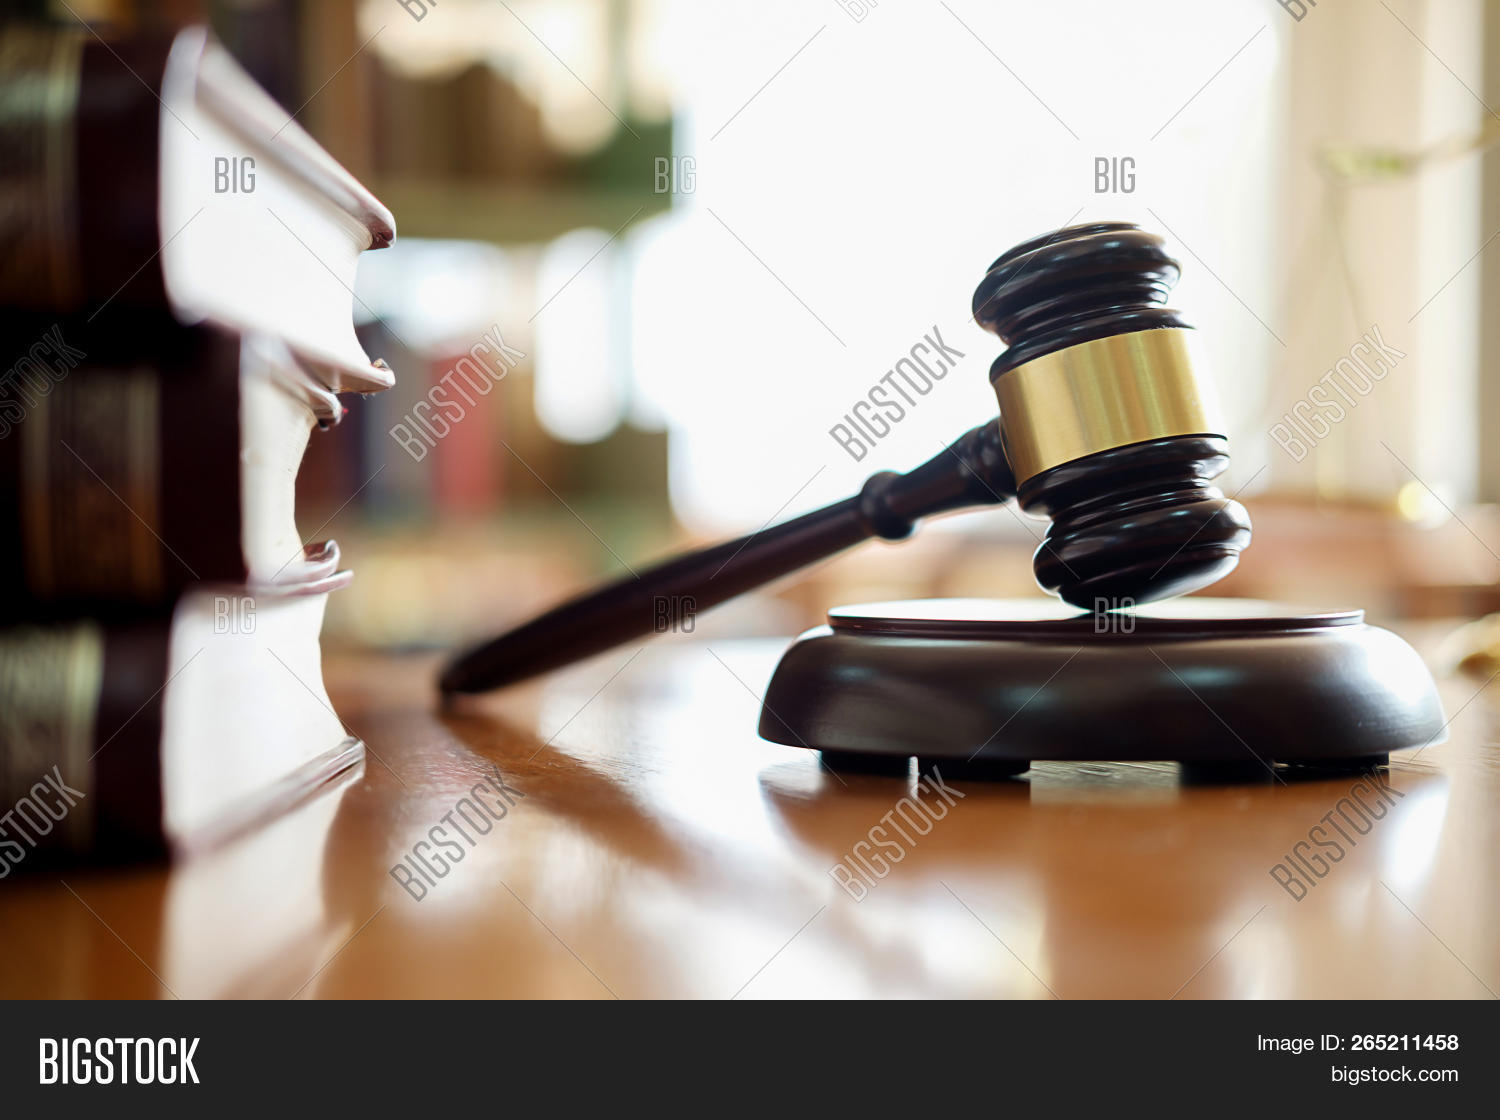 advice,adviser,advisor,agreement,attorney,auction,background,bid,bidding,books,brainstorm,business,concept,consult,consultants,contract,court,courtroom,document,education,firm,gavel,hammer,instructive,judge,judgement,judiciary,jurisprudence,justice,law,lawyer,legal,legislate,meeting,men,office,online,people,recommend,services,statute,study,suggest,teach,team,verdict